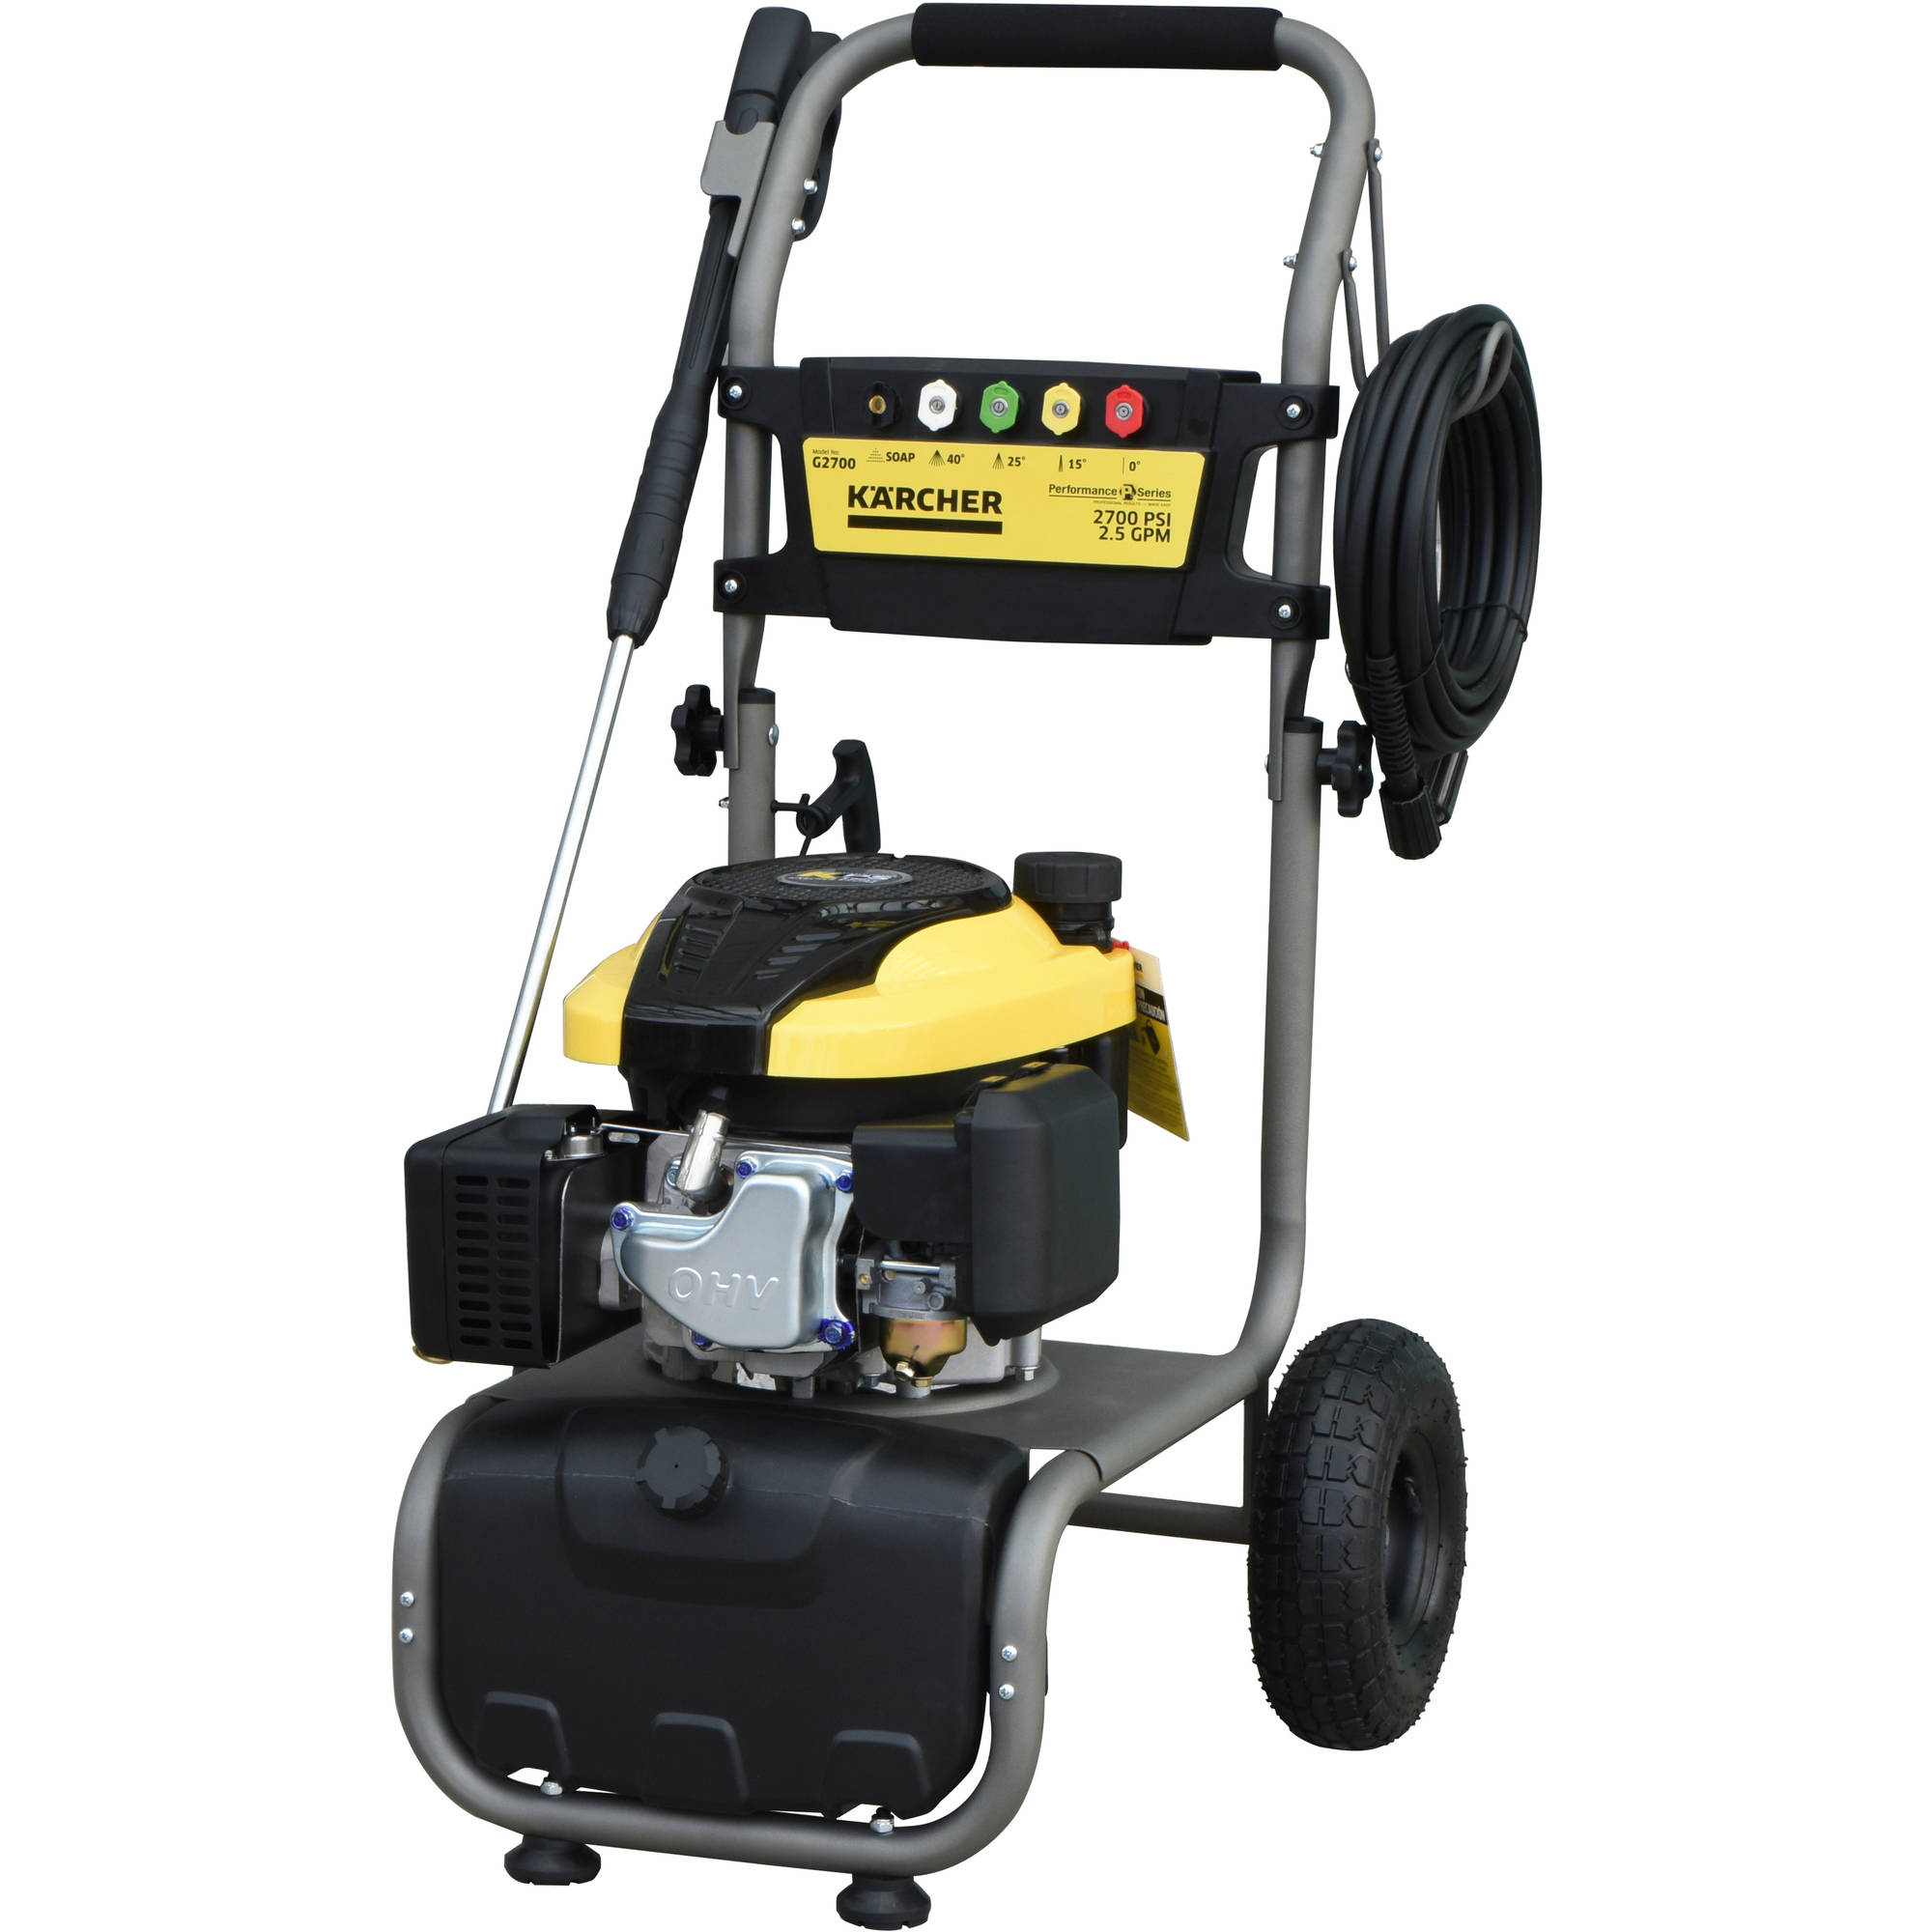 Karcher G 2700 Performance Series 2700 PSI Gas Pressure Washer by KARCHER NORTH AMERICA